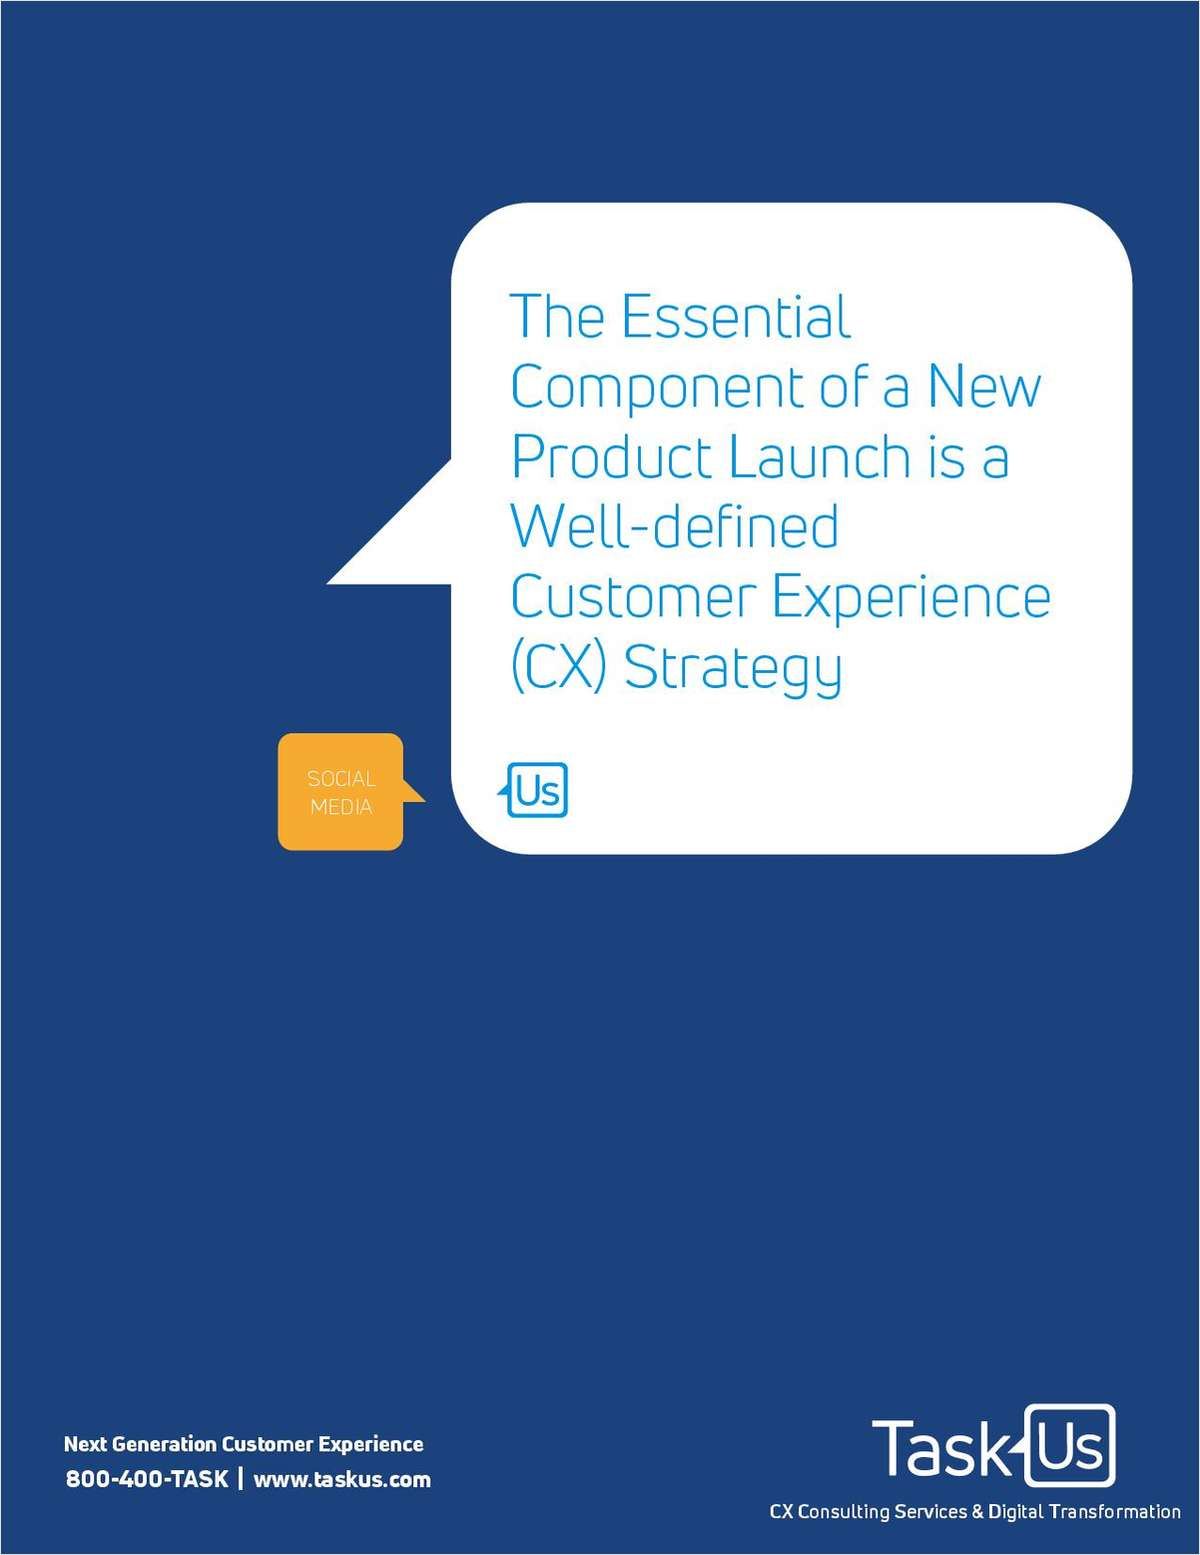 The Power Behind a Product Launch is a Well-defined CX Strategy